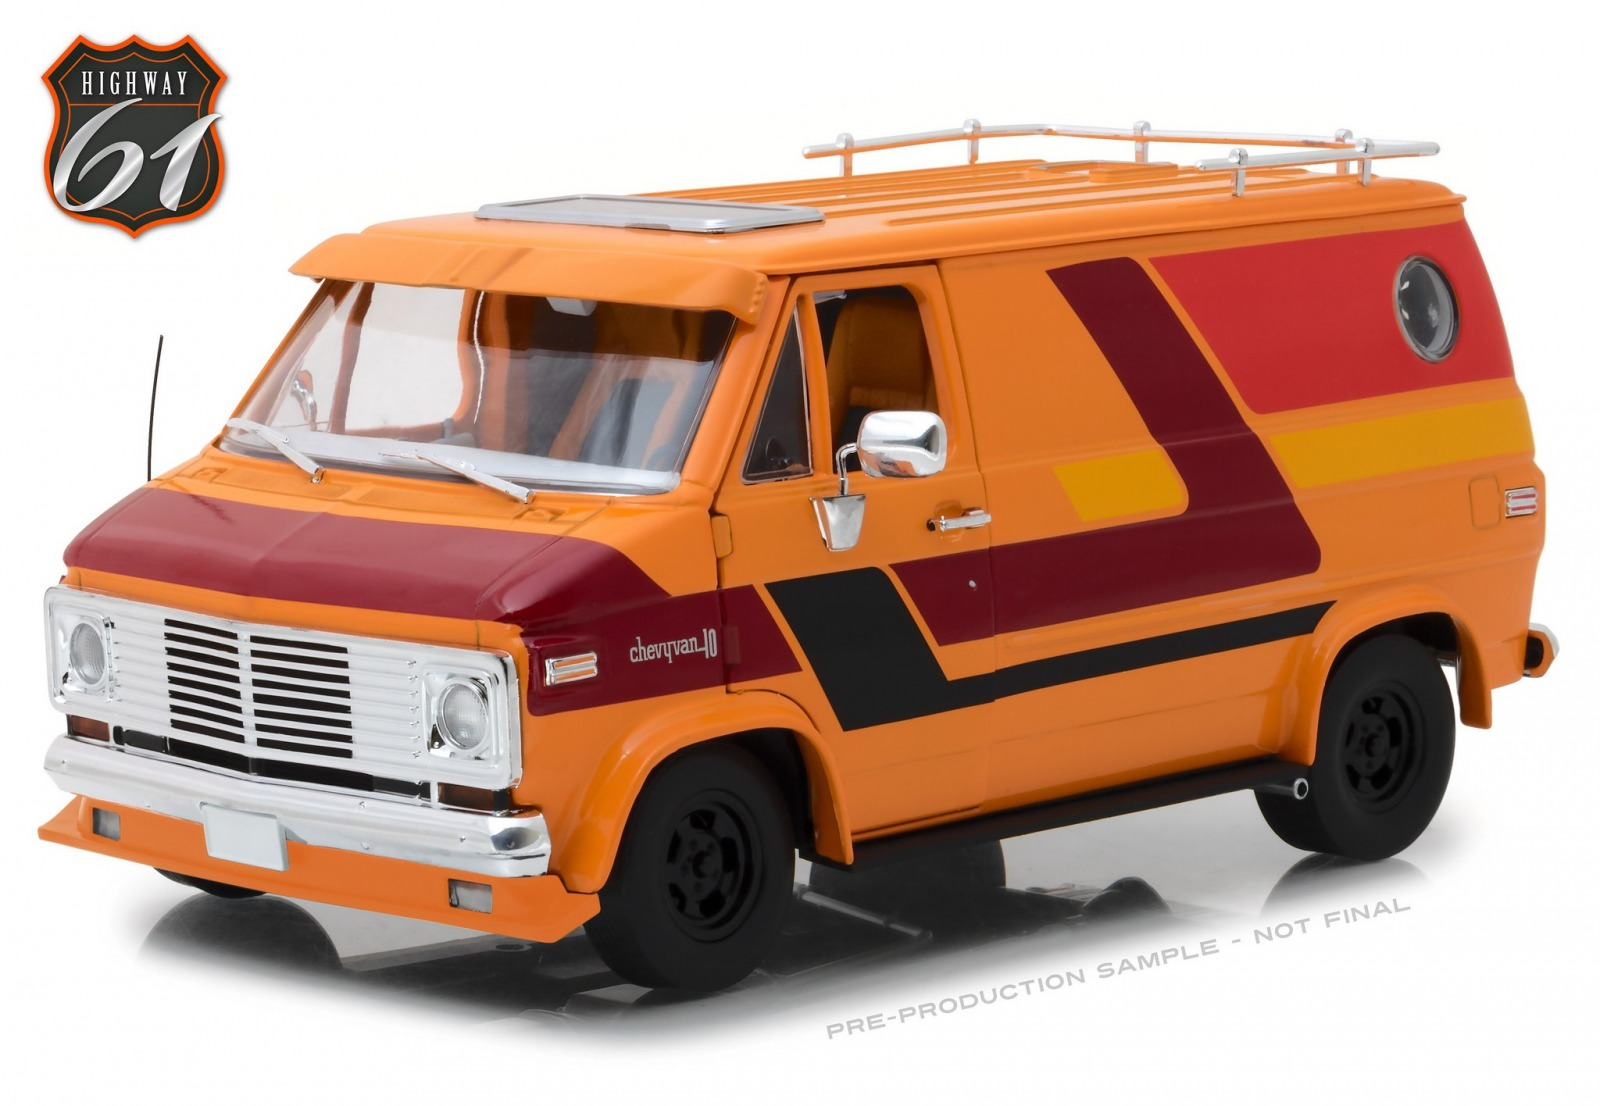 Highway 61 1:18 1976年モデル シボレー G Series Van オレンジHighway 61 1976 Chevrolet G-Series Van - Orange w Custom Graphics 1:18 USA NEW